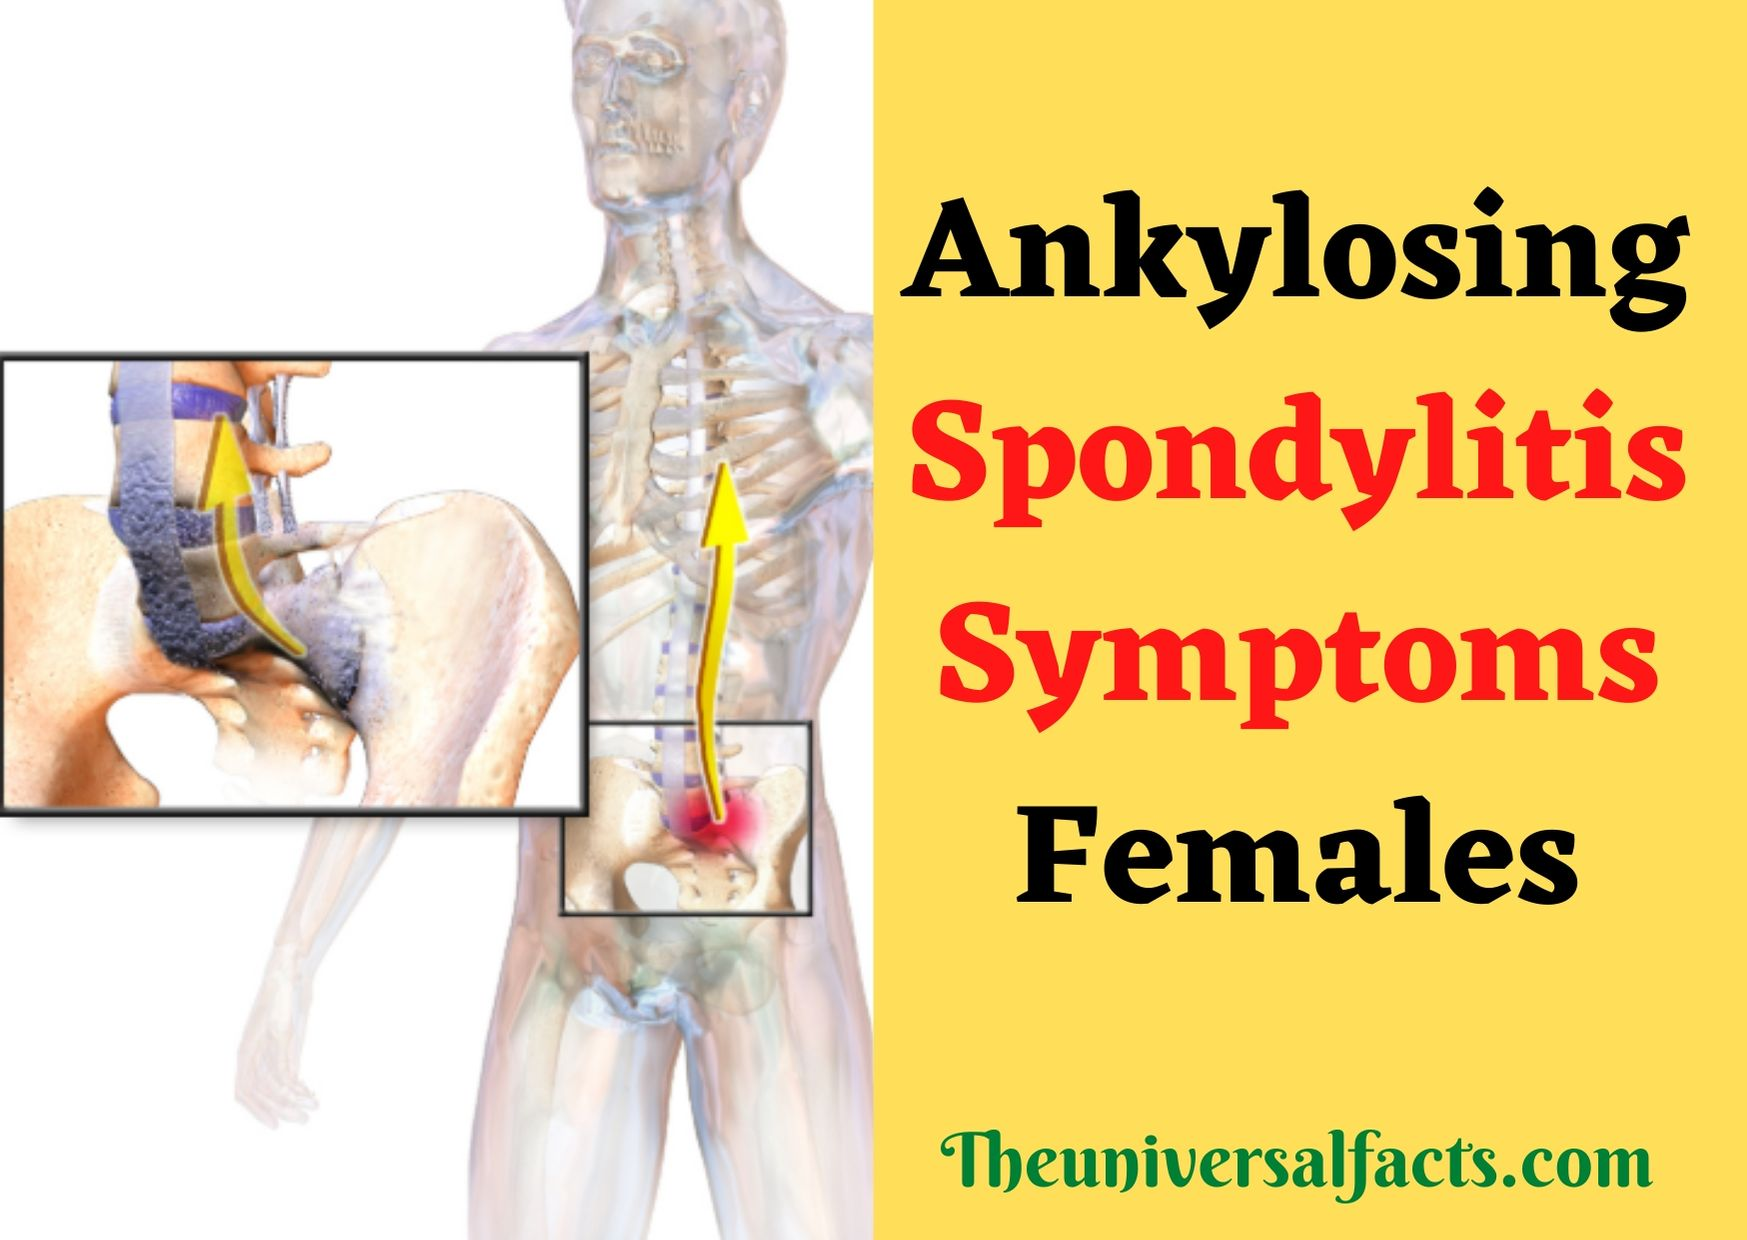 Ankylosing Spondylitis Symptoms Females